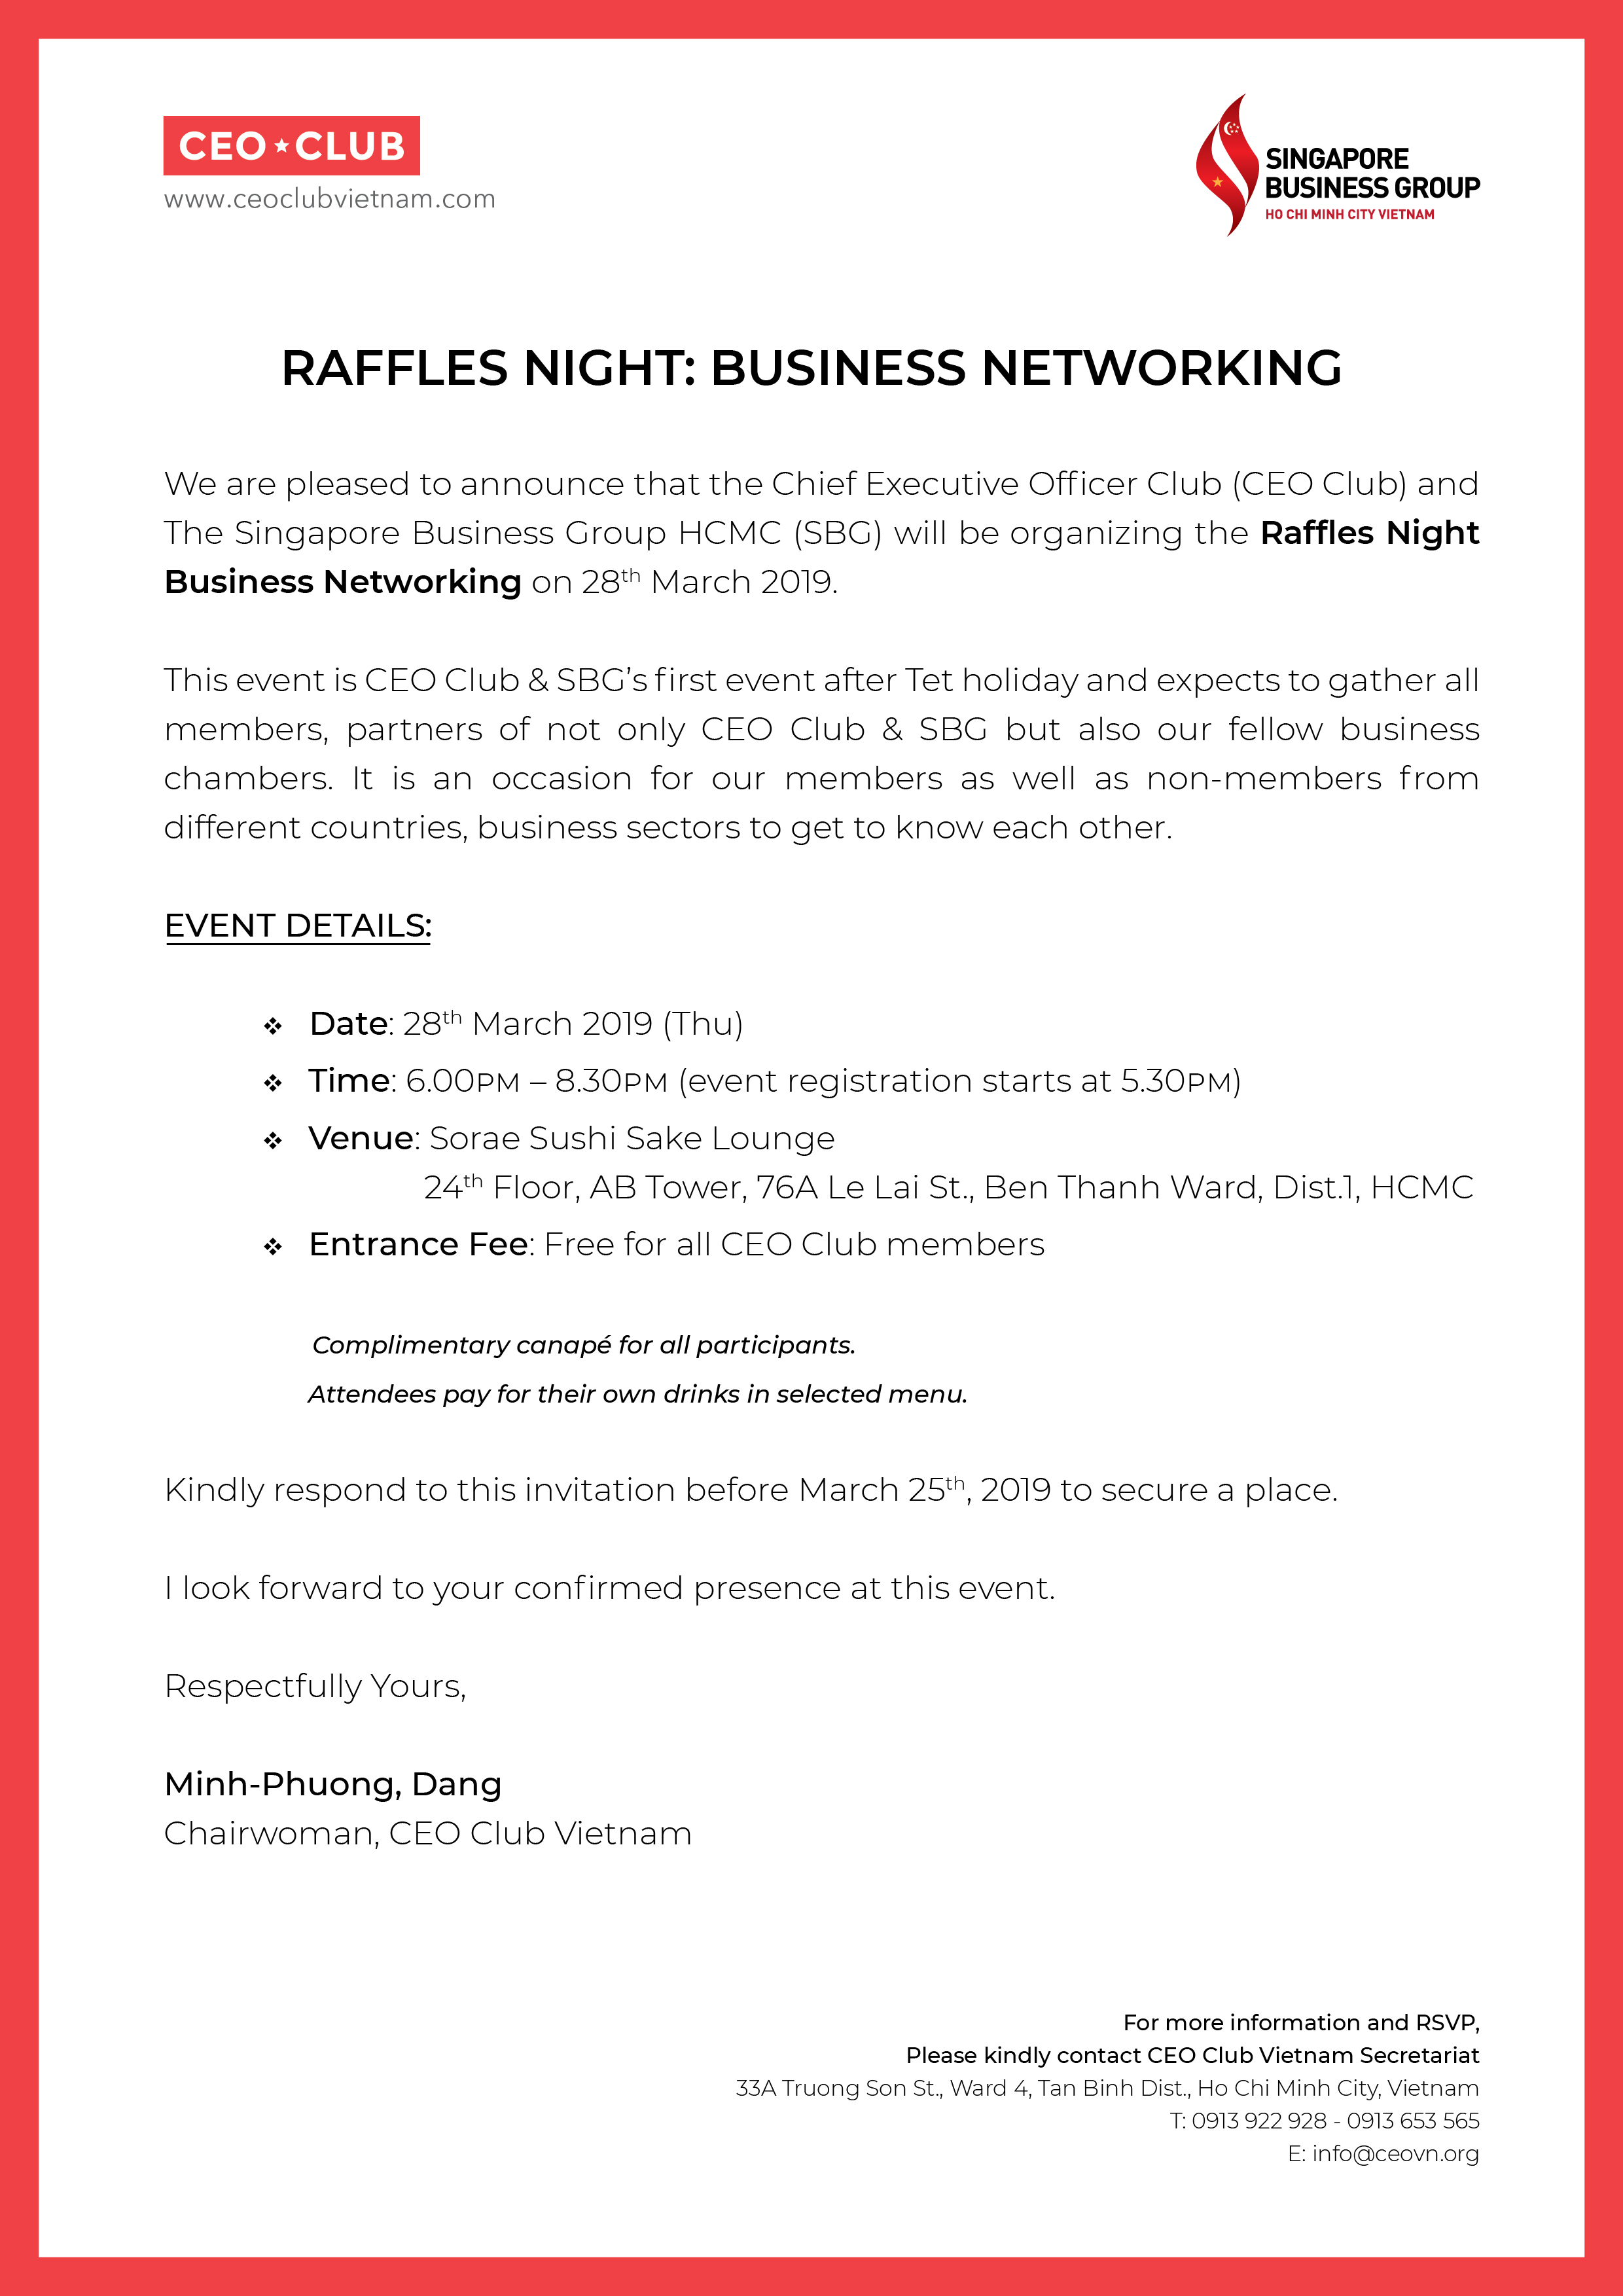 RAFFLES NIGHT - BUSINESS NETWORKING